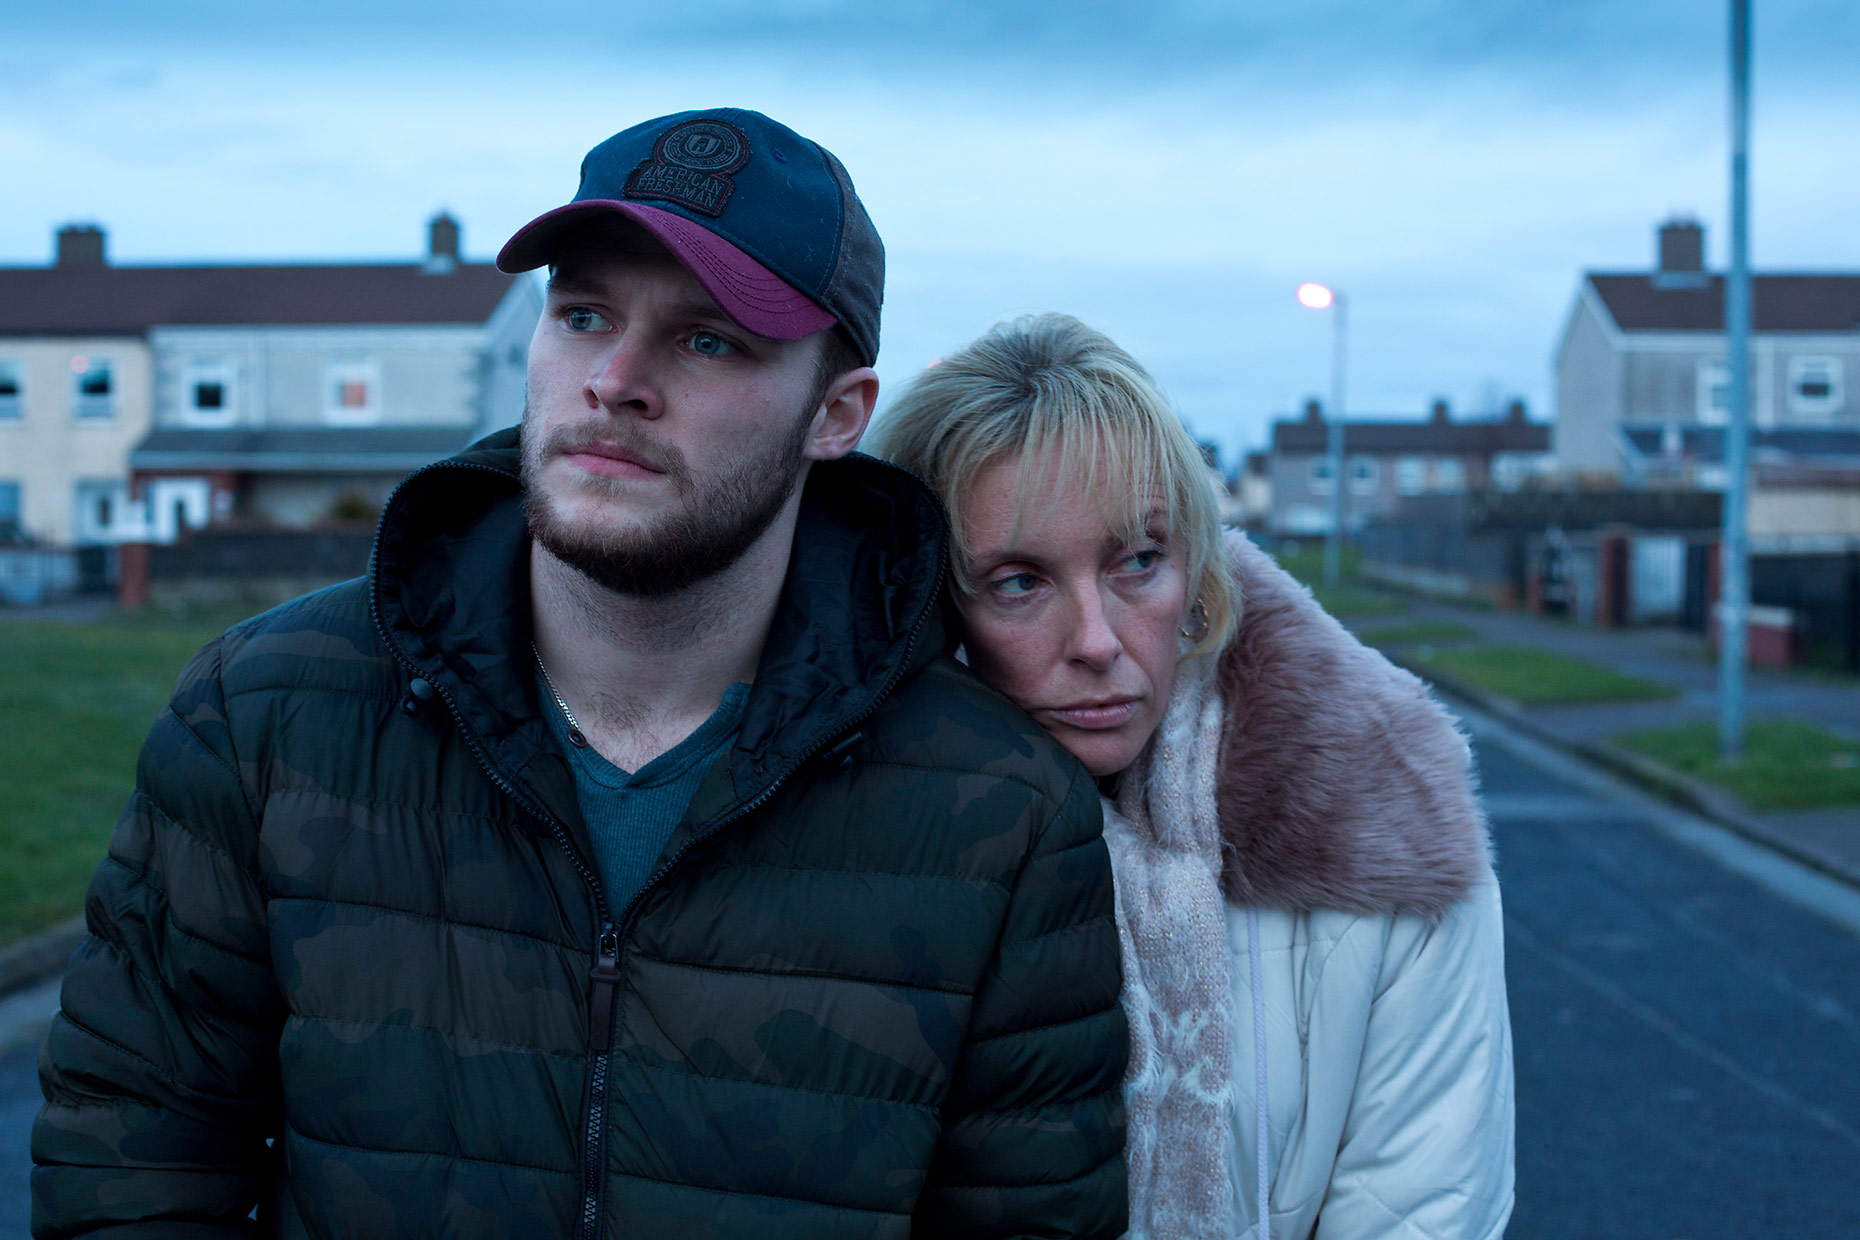 GLASSLAND Jack Reznor and Toni Collette